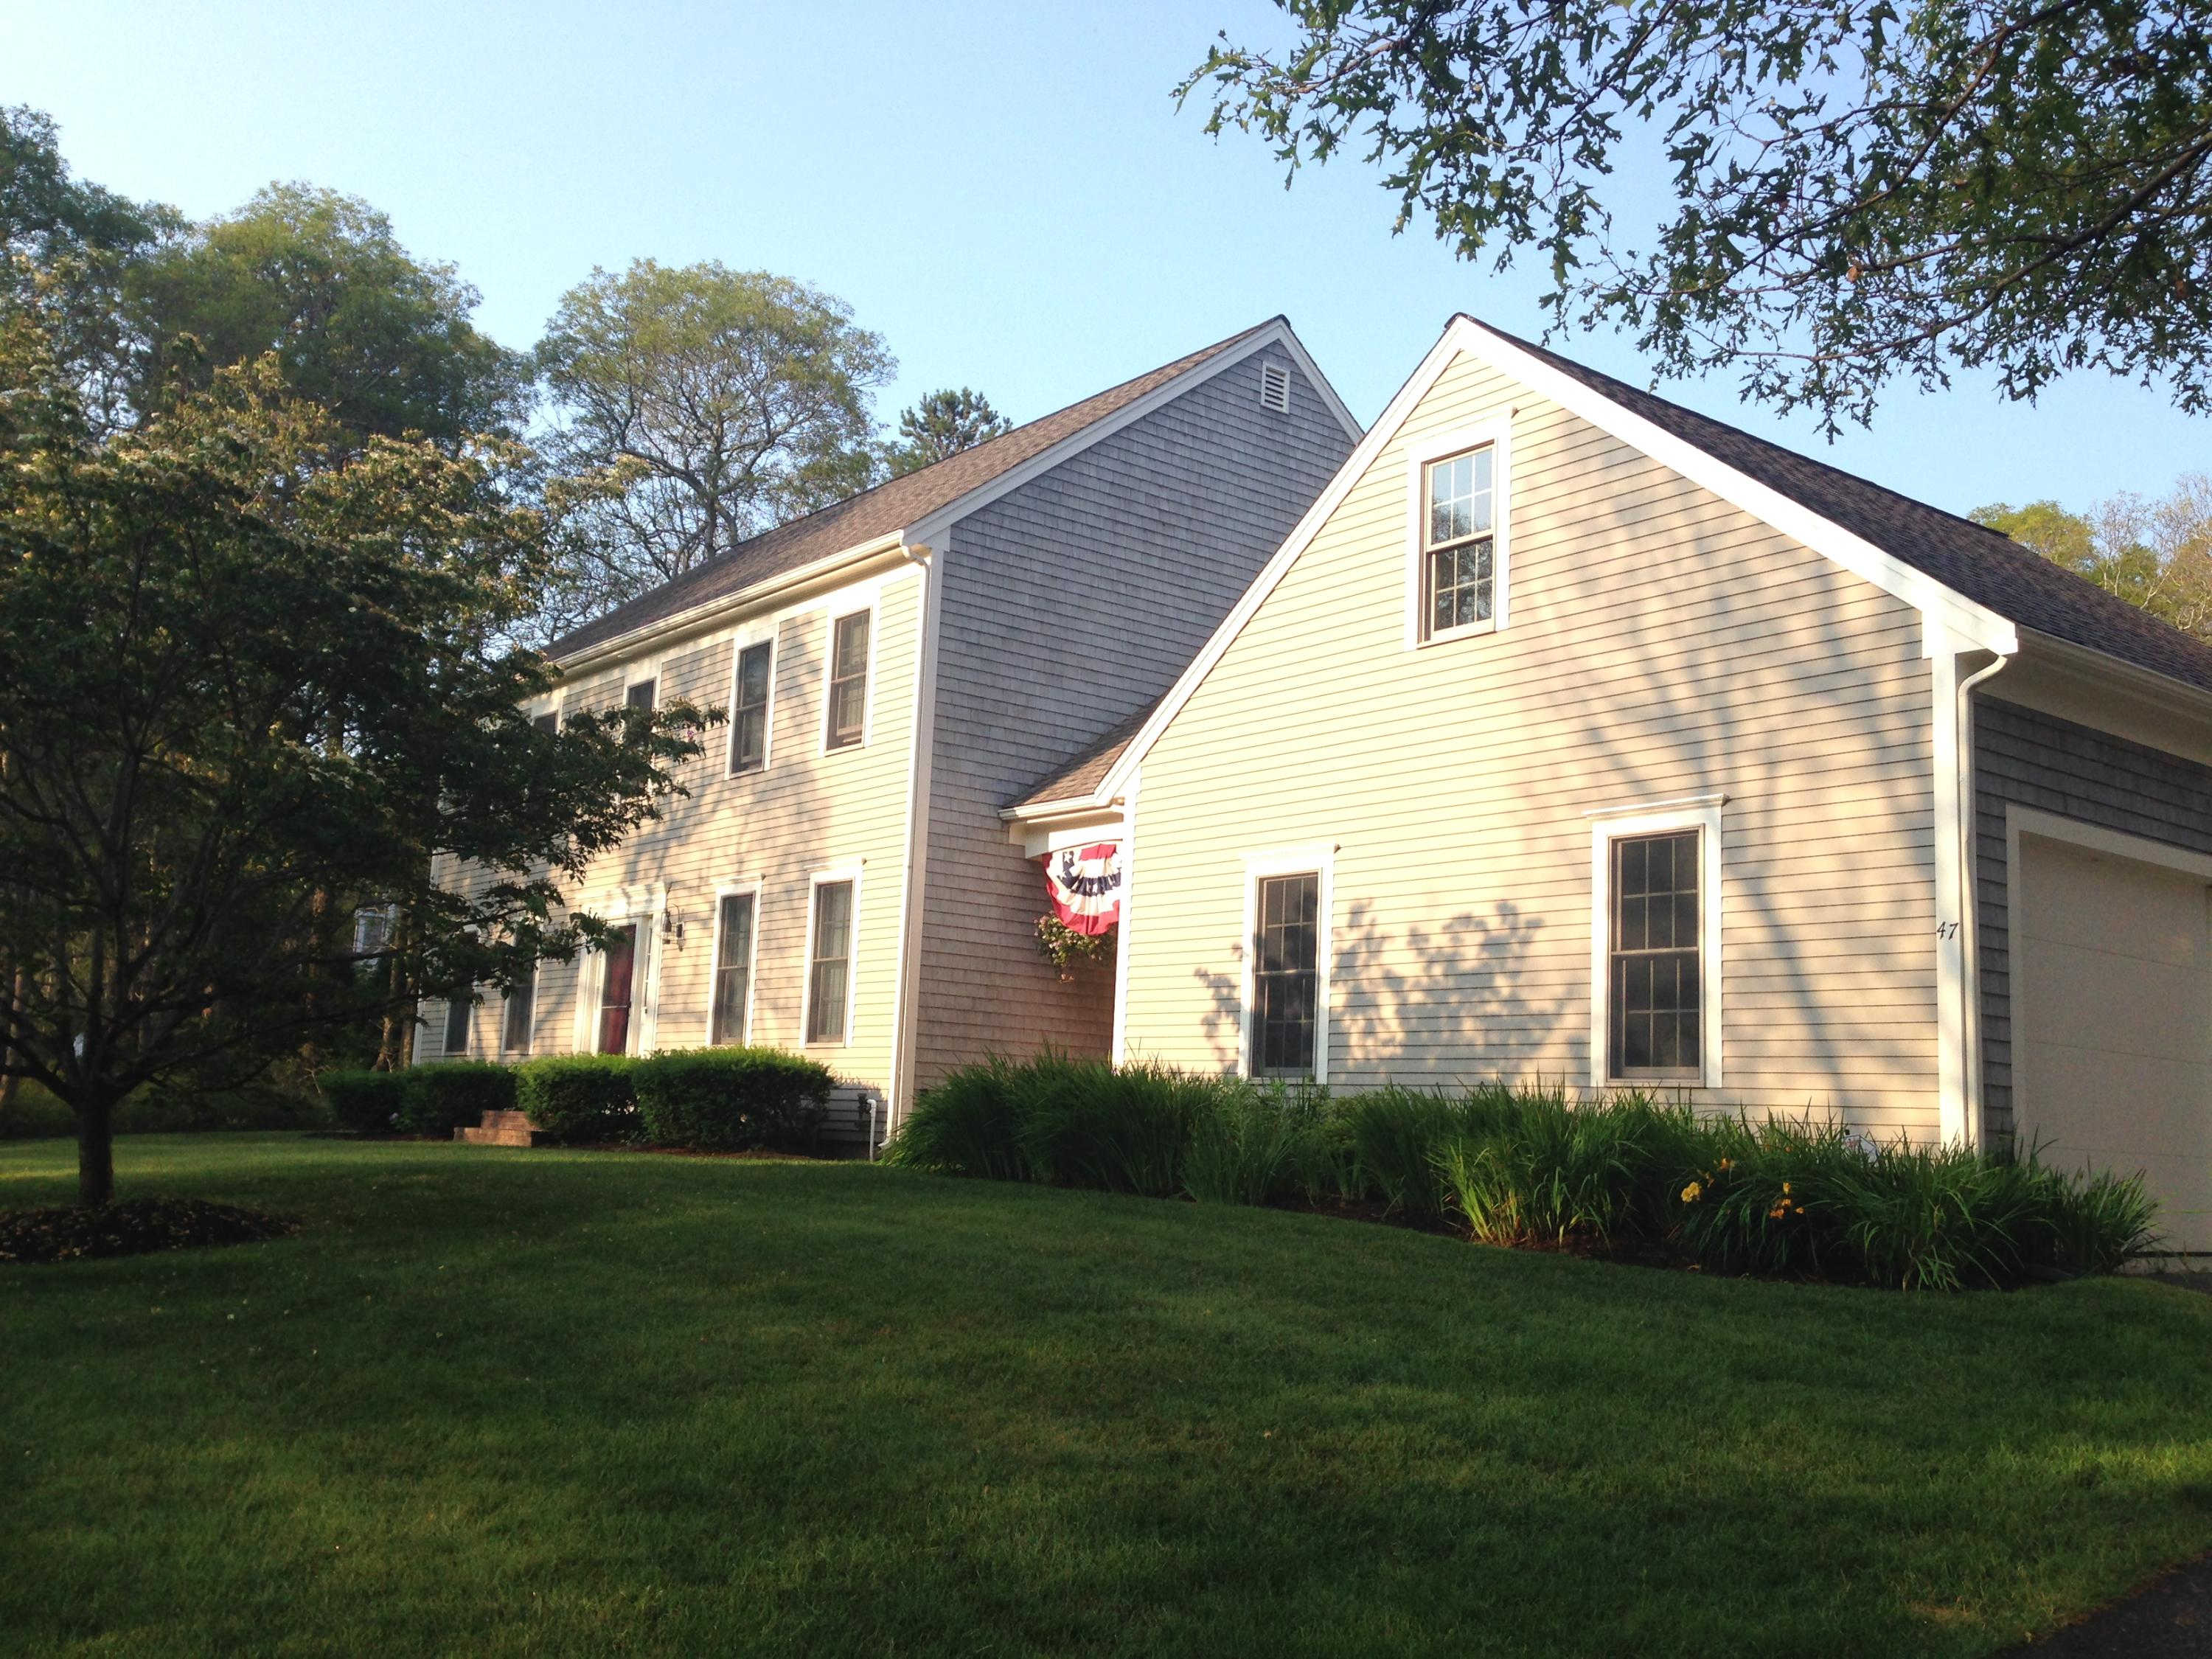 47 Barque Circle, East Dennis, MA 02641 now has a new price of $749,900!